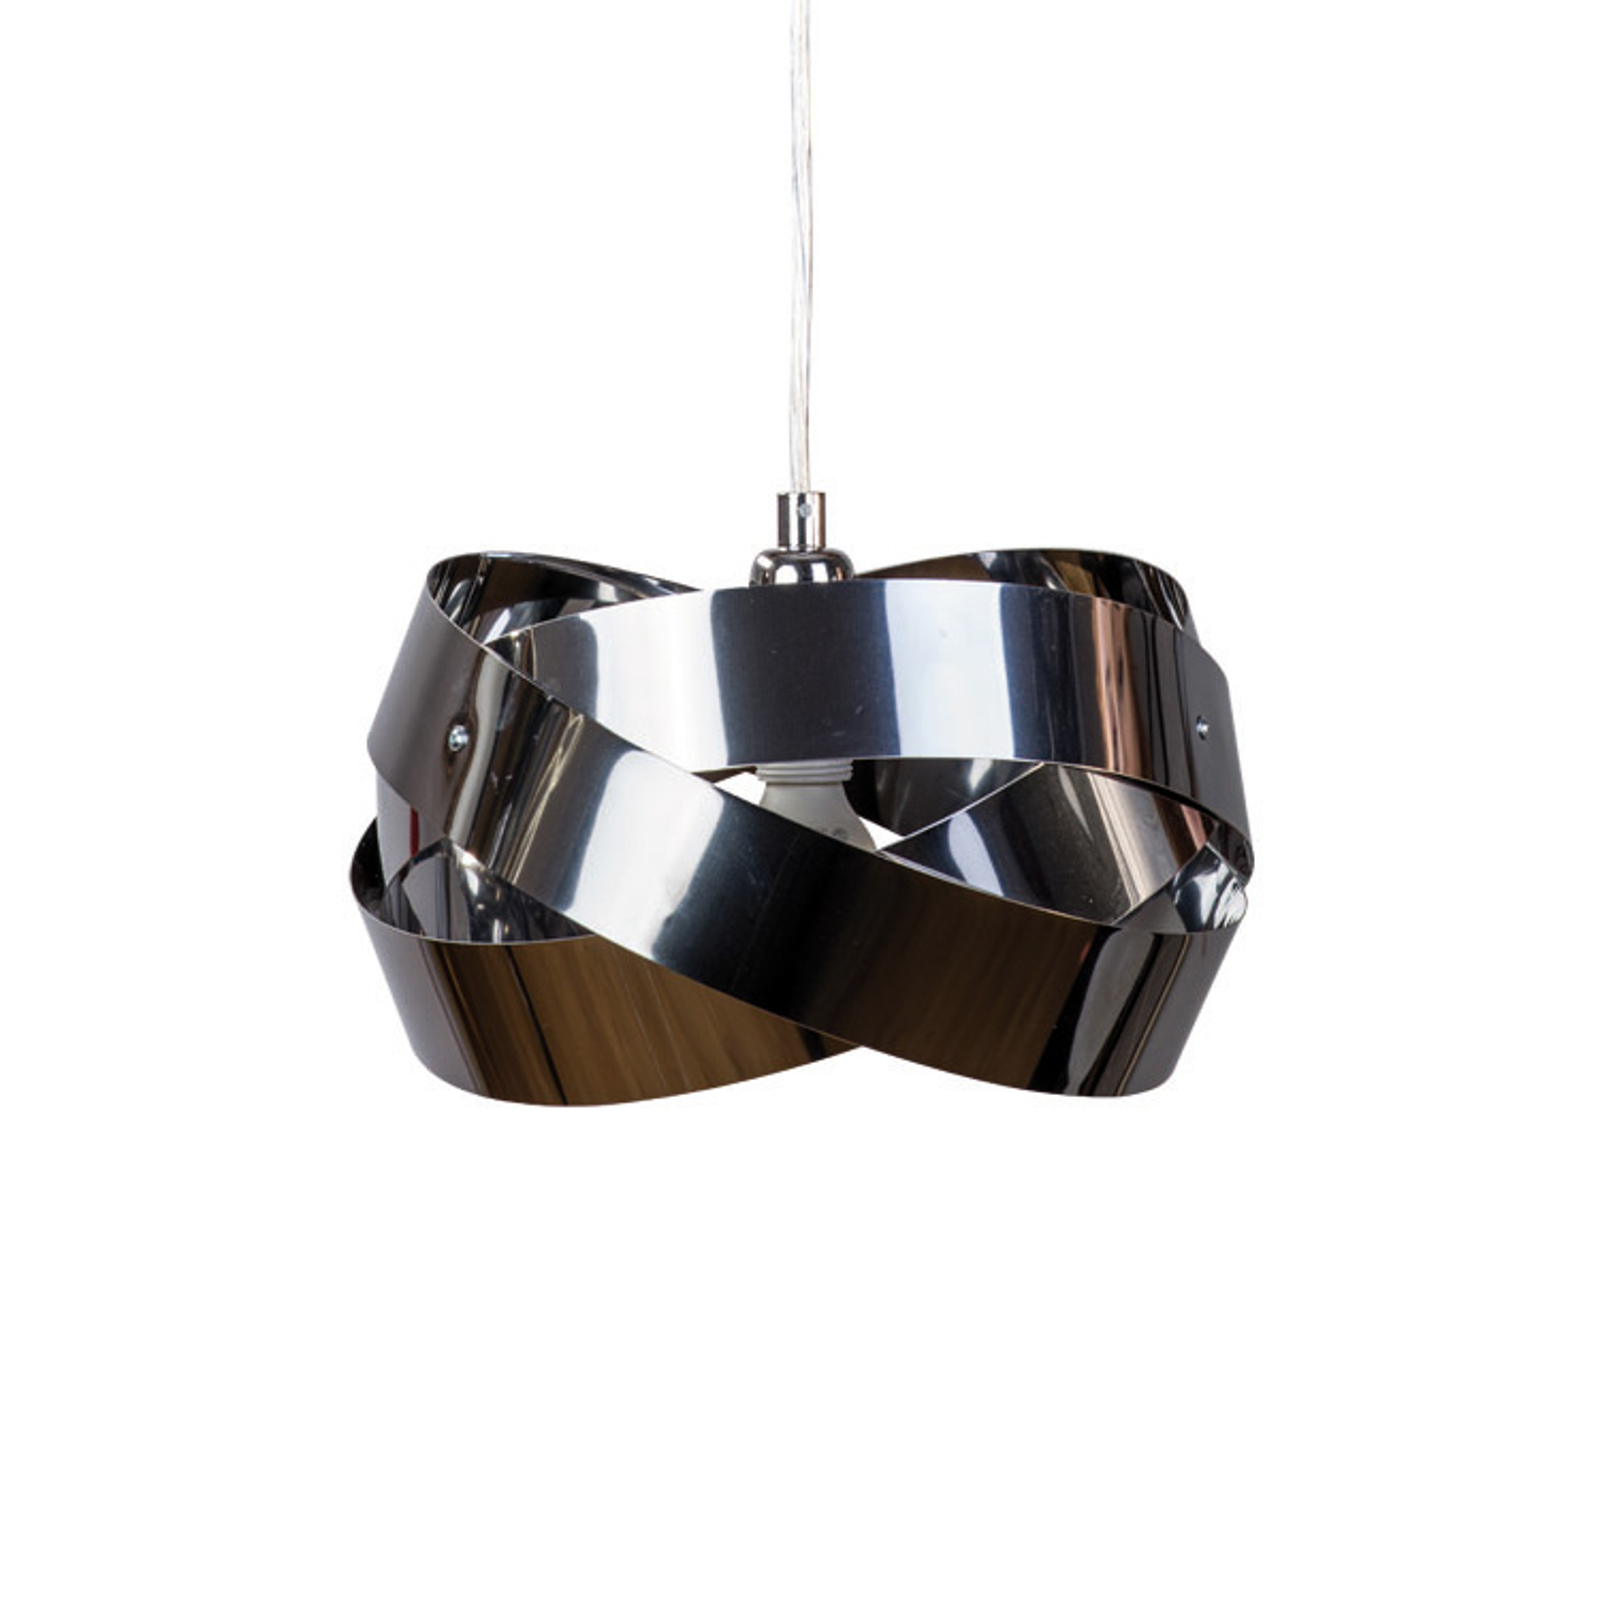 Suspension Tornado Ø 26 cm chromé-nickel